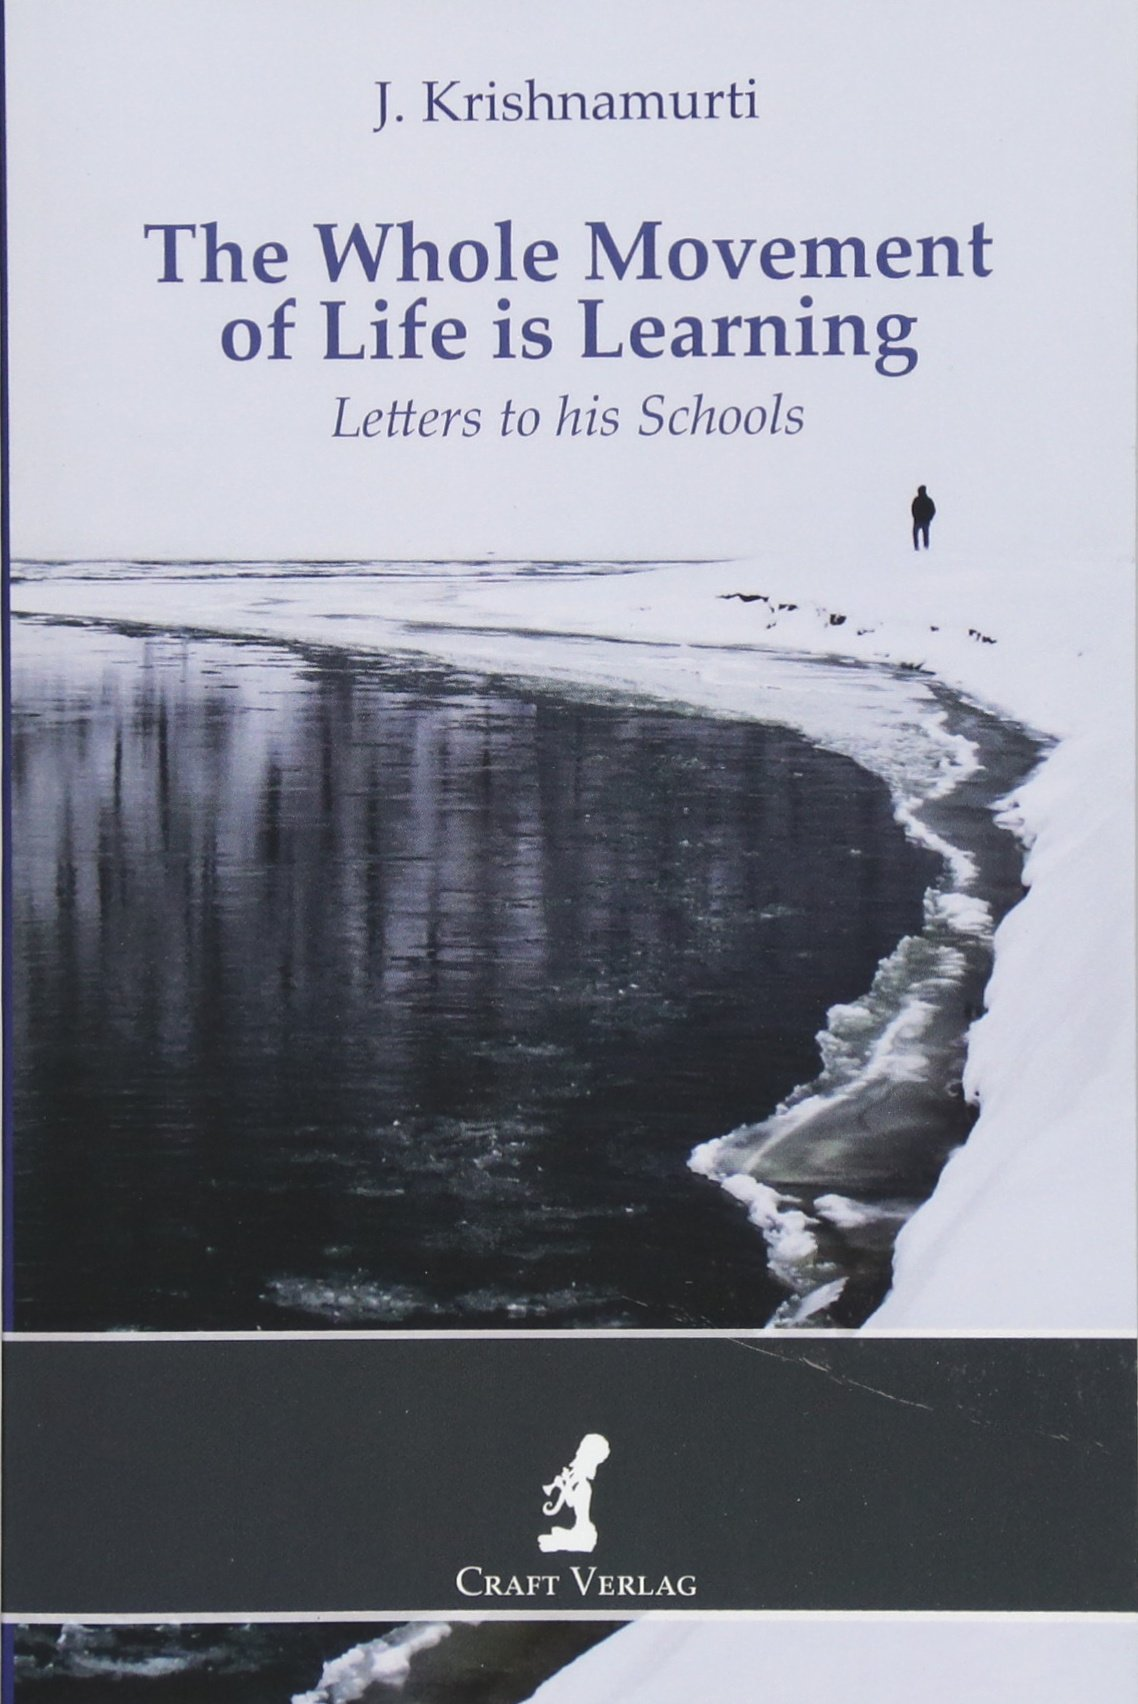 Download The Whole Movement of Life is Learning: Letters to his Schools pdf